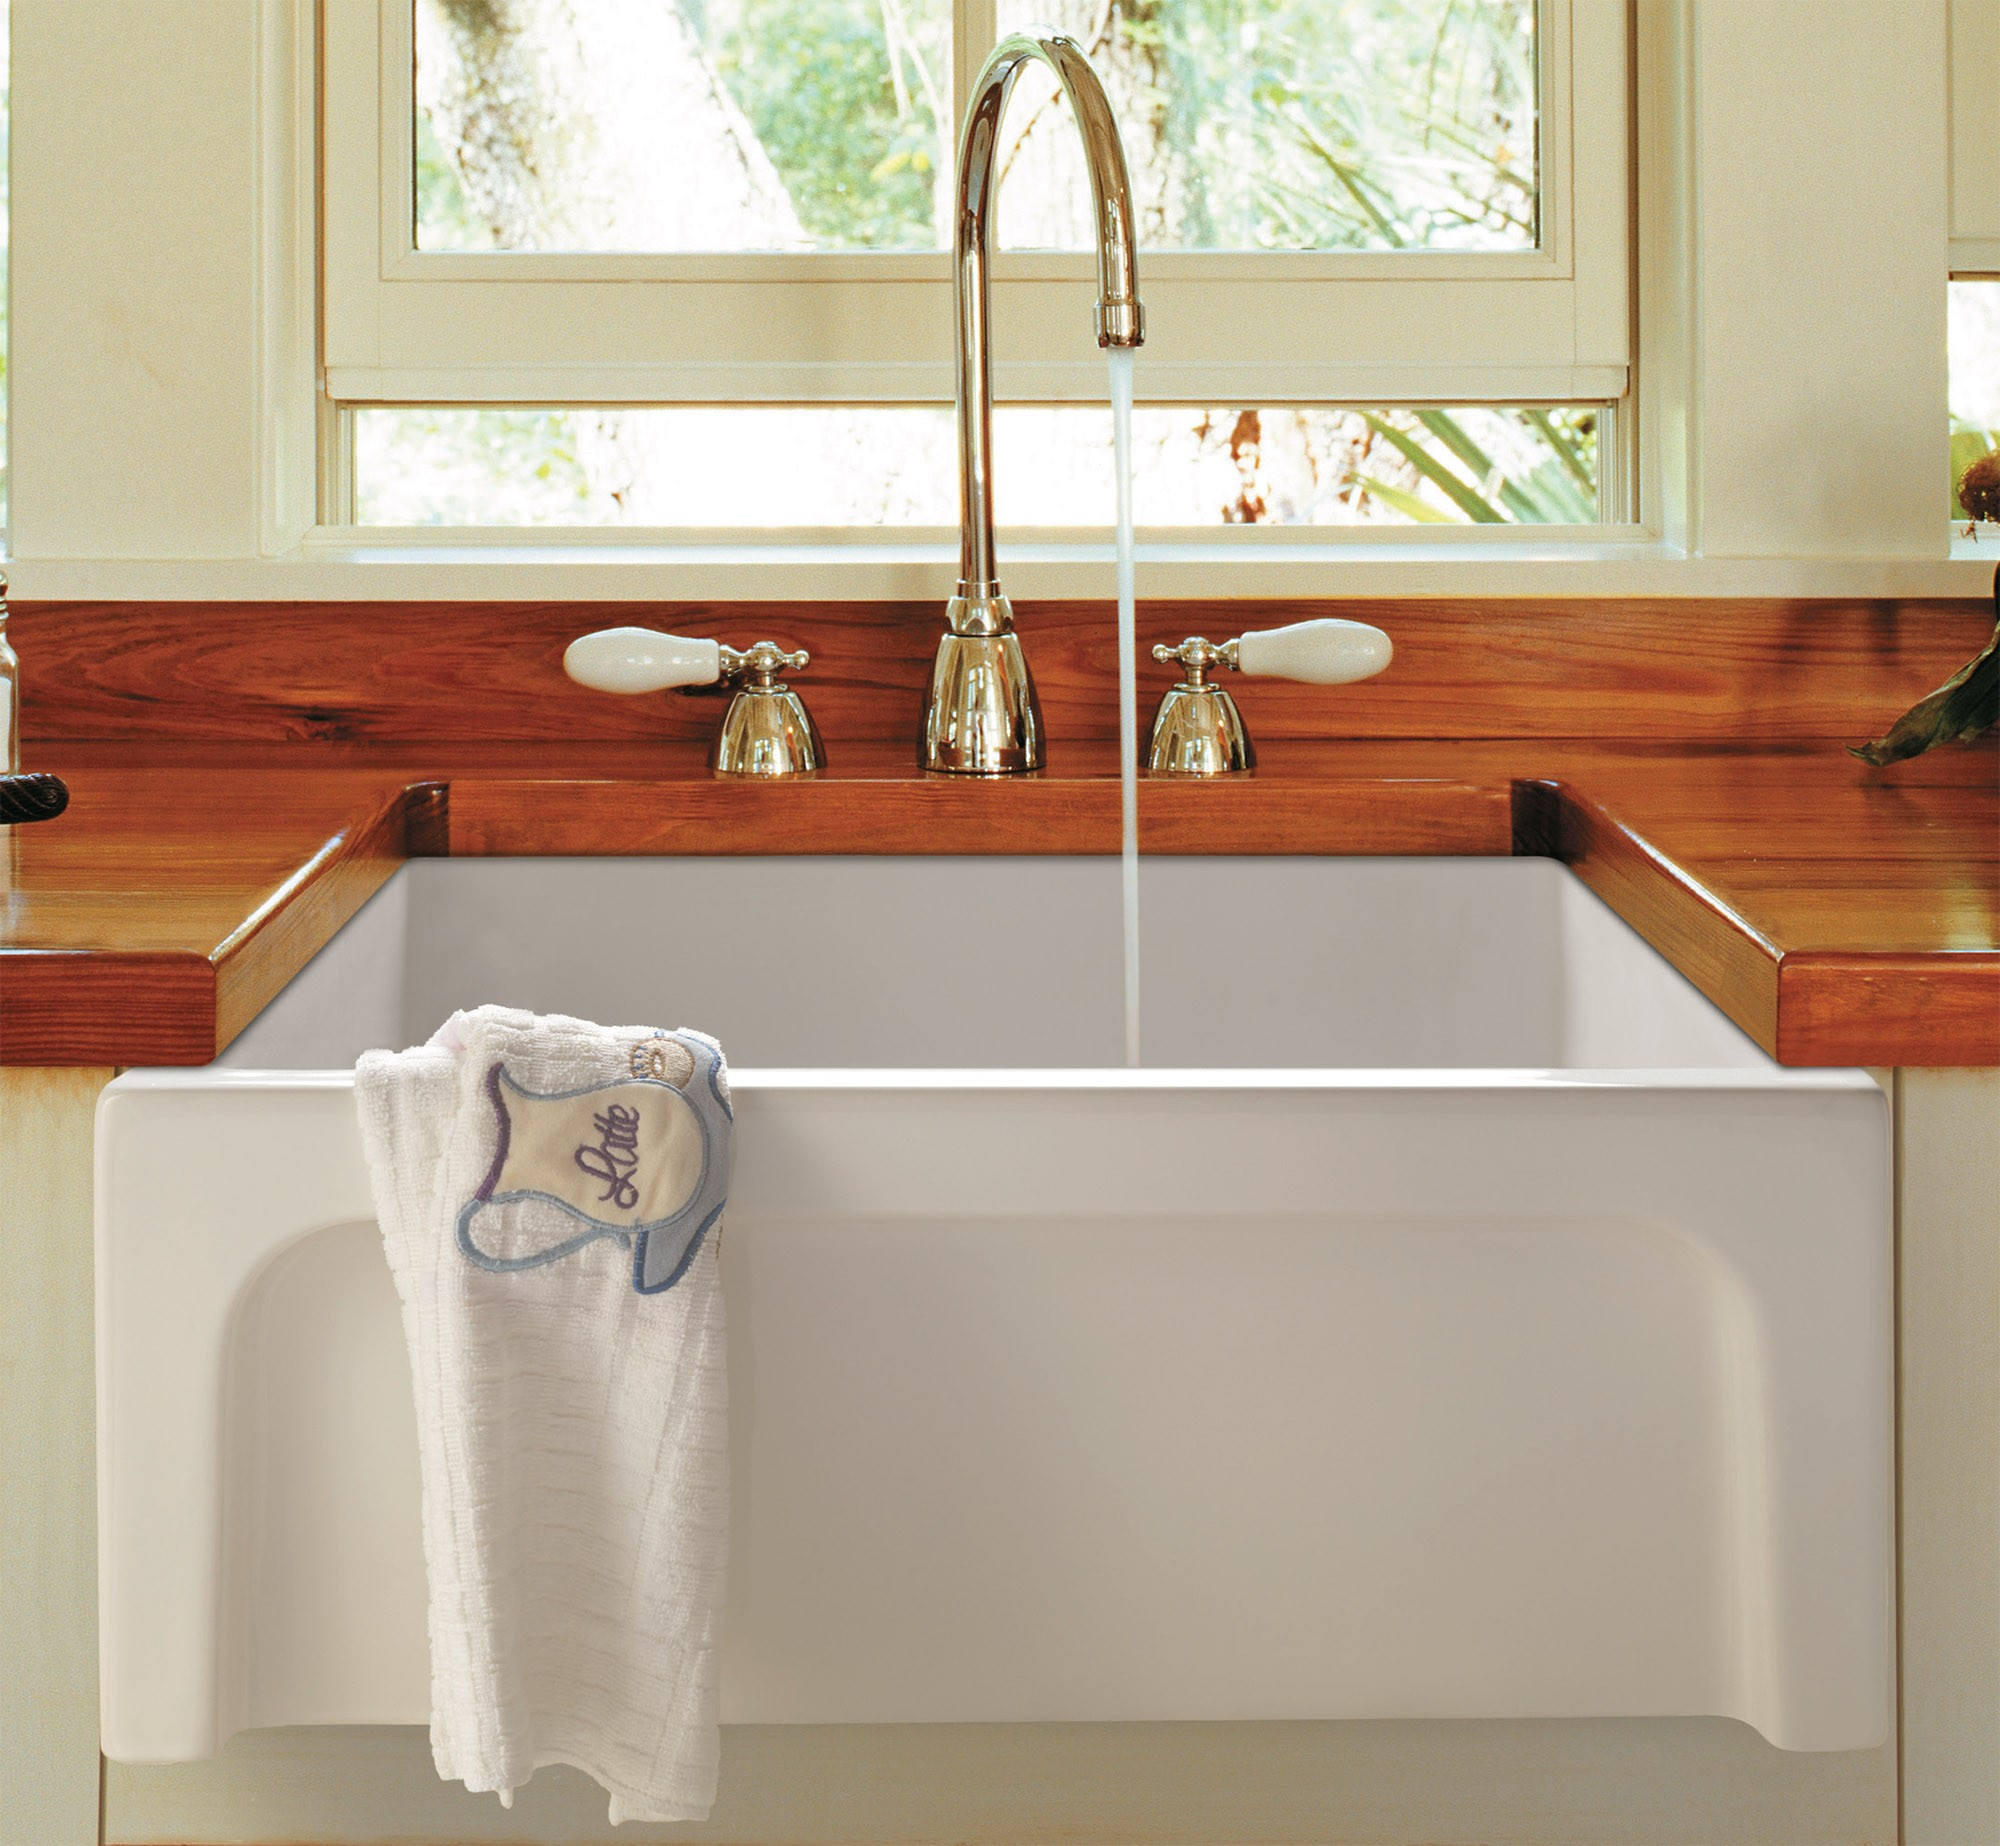 The Use of Fireclay Farm Sinks in the Laundry Room